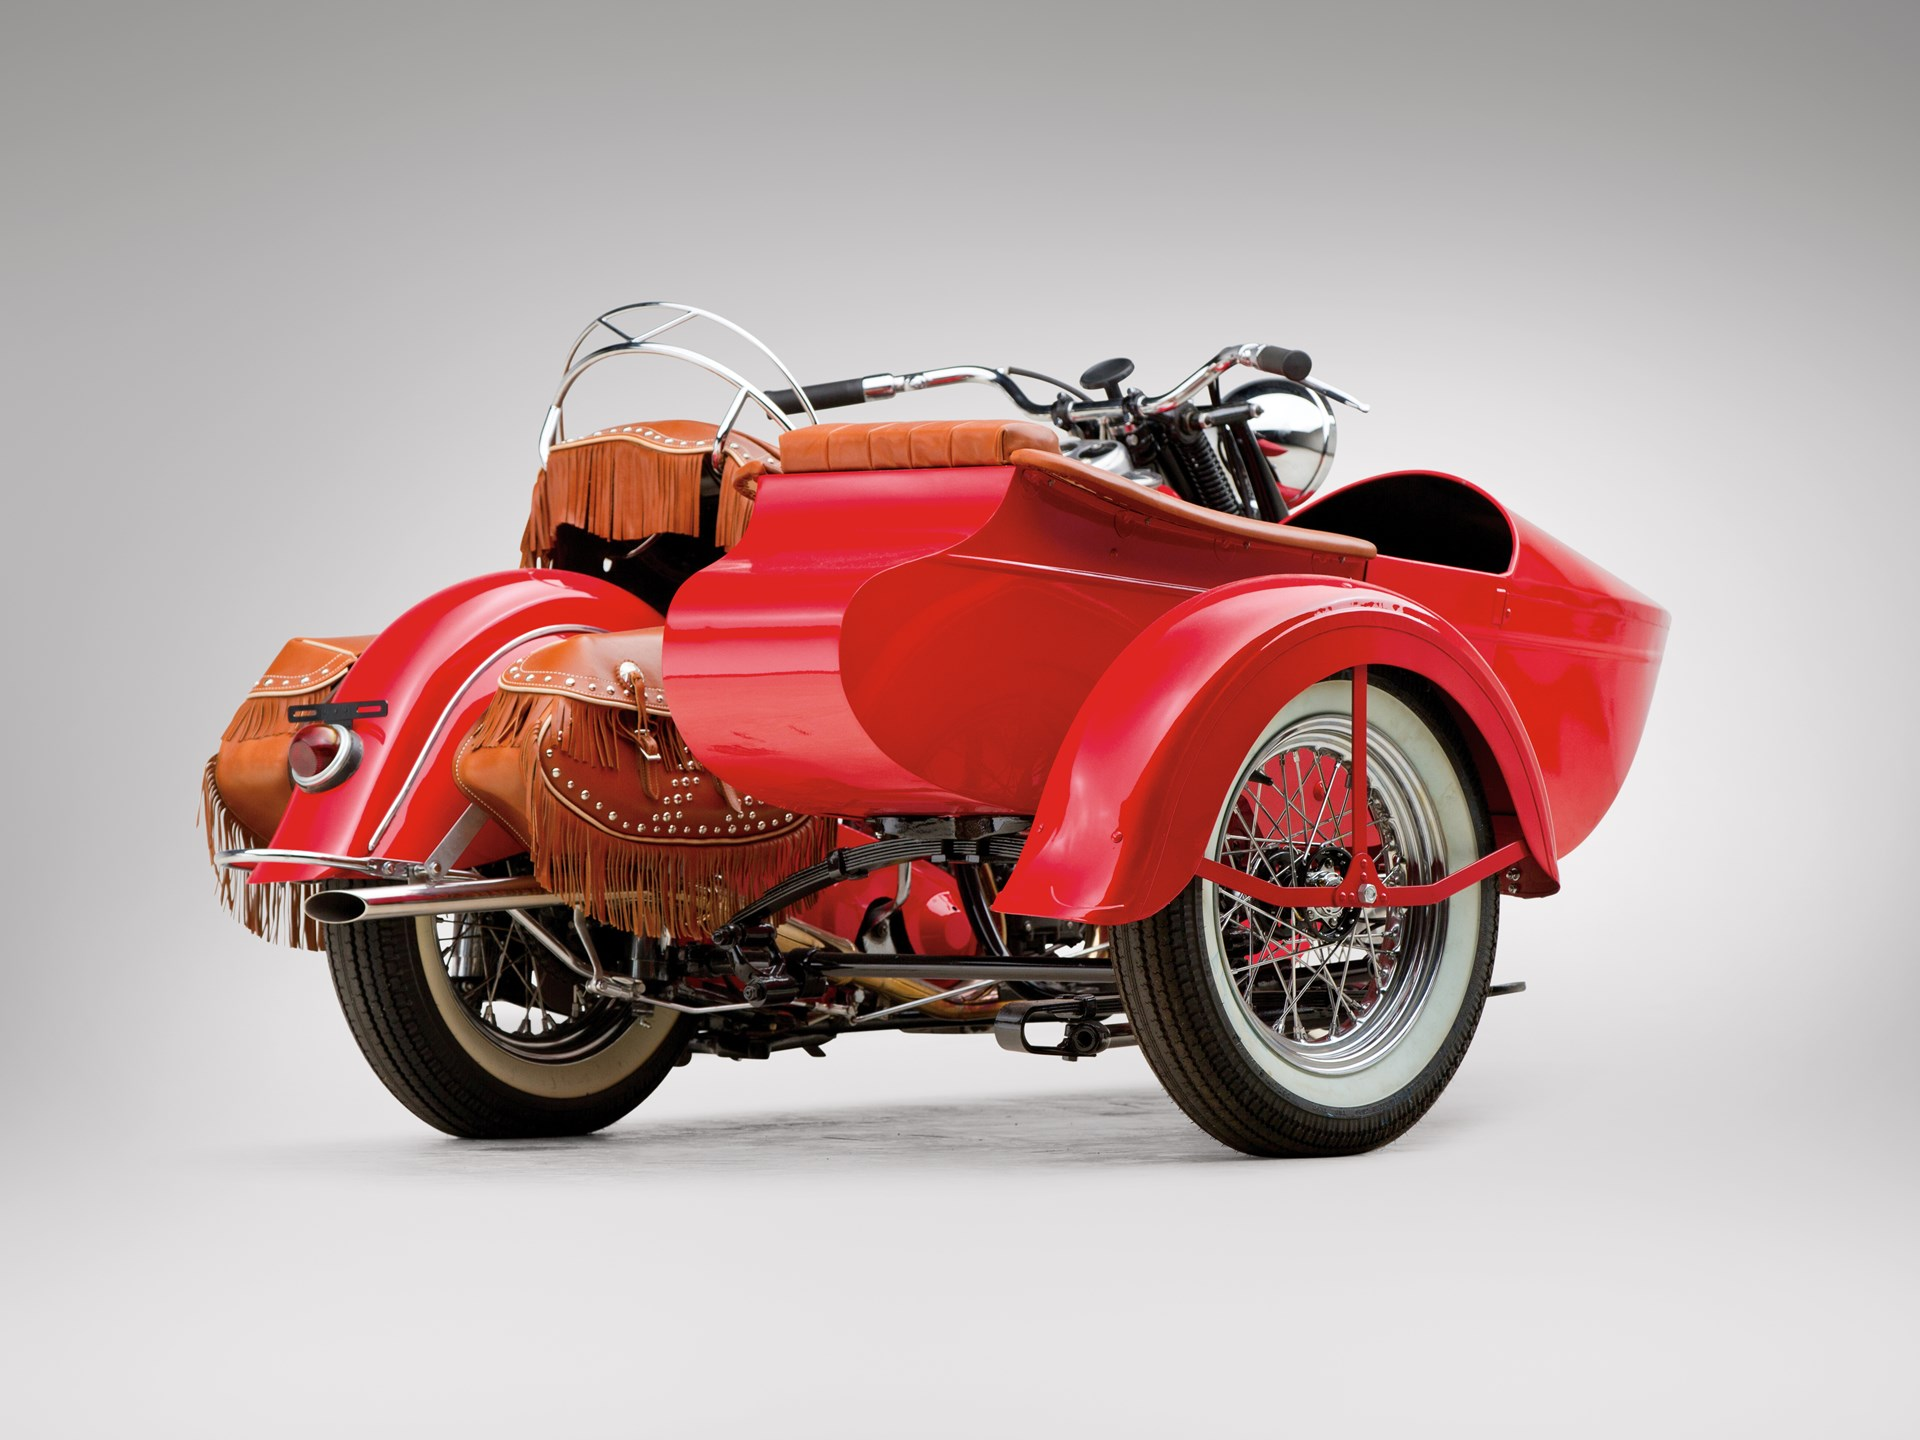 RM Sotheby's - 1946 Indian Chief Motorcycle and Sidecar